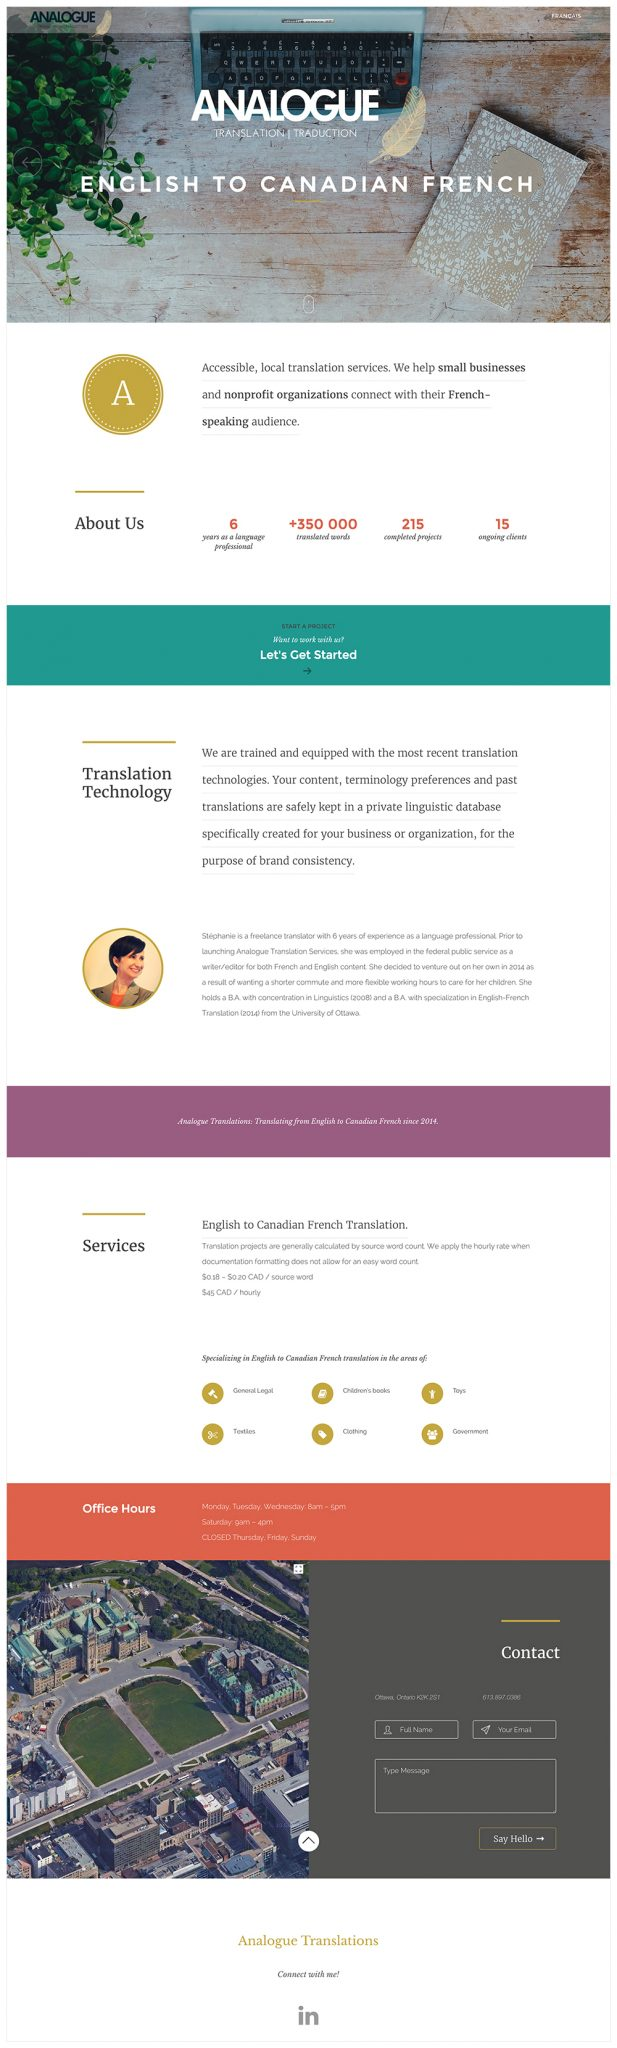 Analogue Translation Website Design